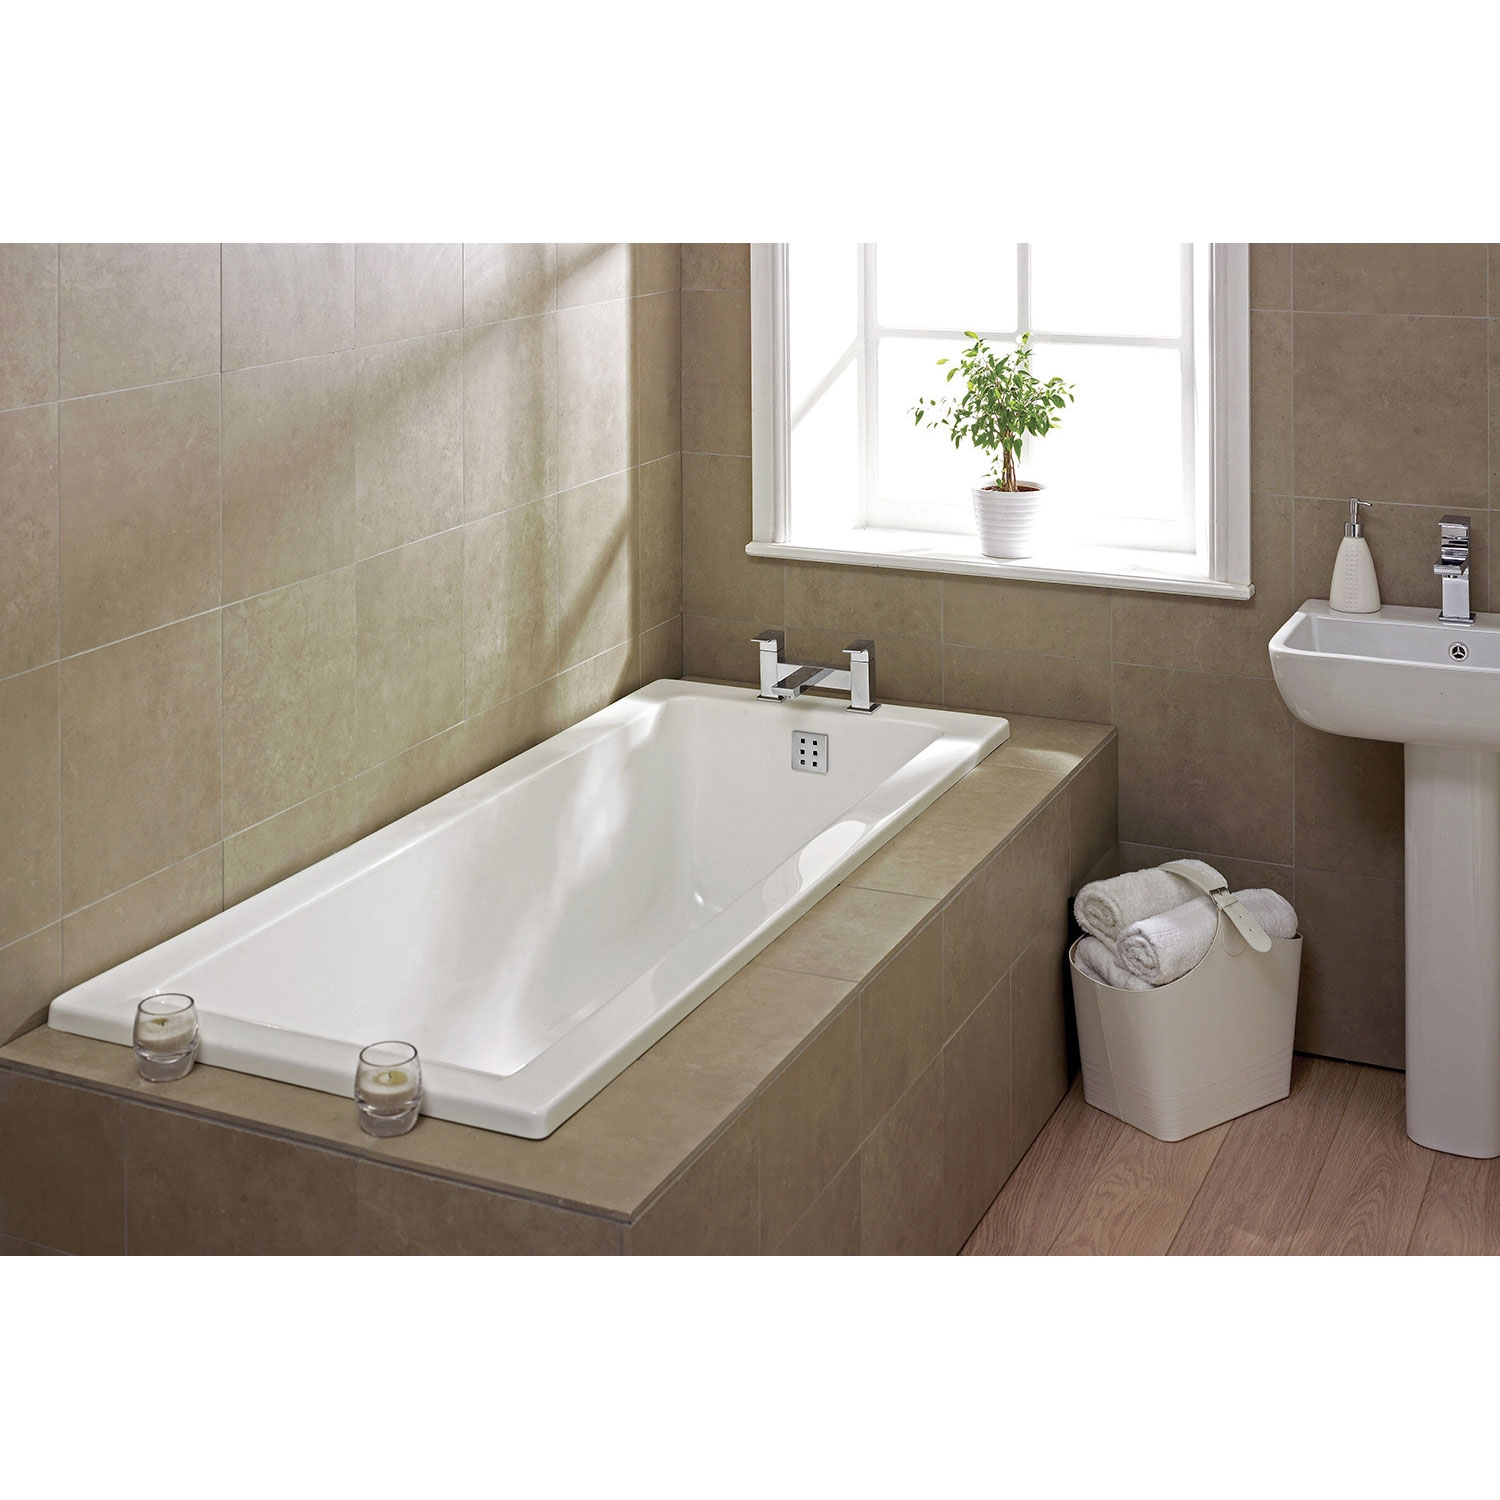 Verona Atlanta Single Ended Rectangular Tungstenite Bath 1700mm x 750mm - 0 Tap Hole